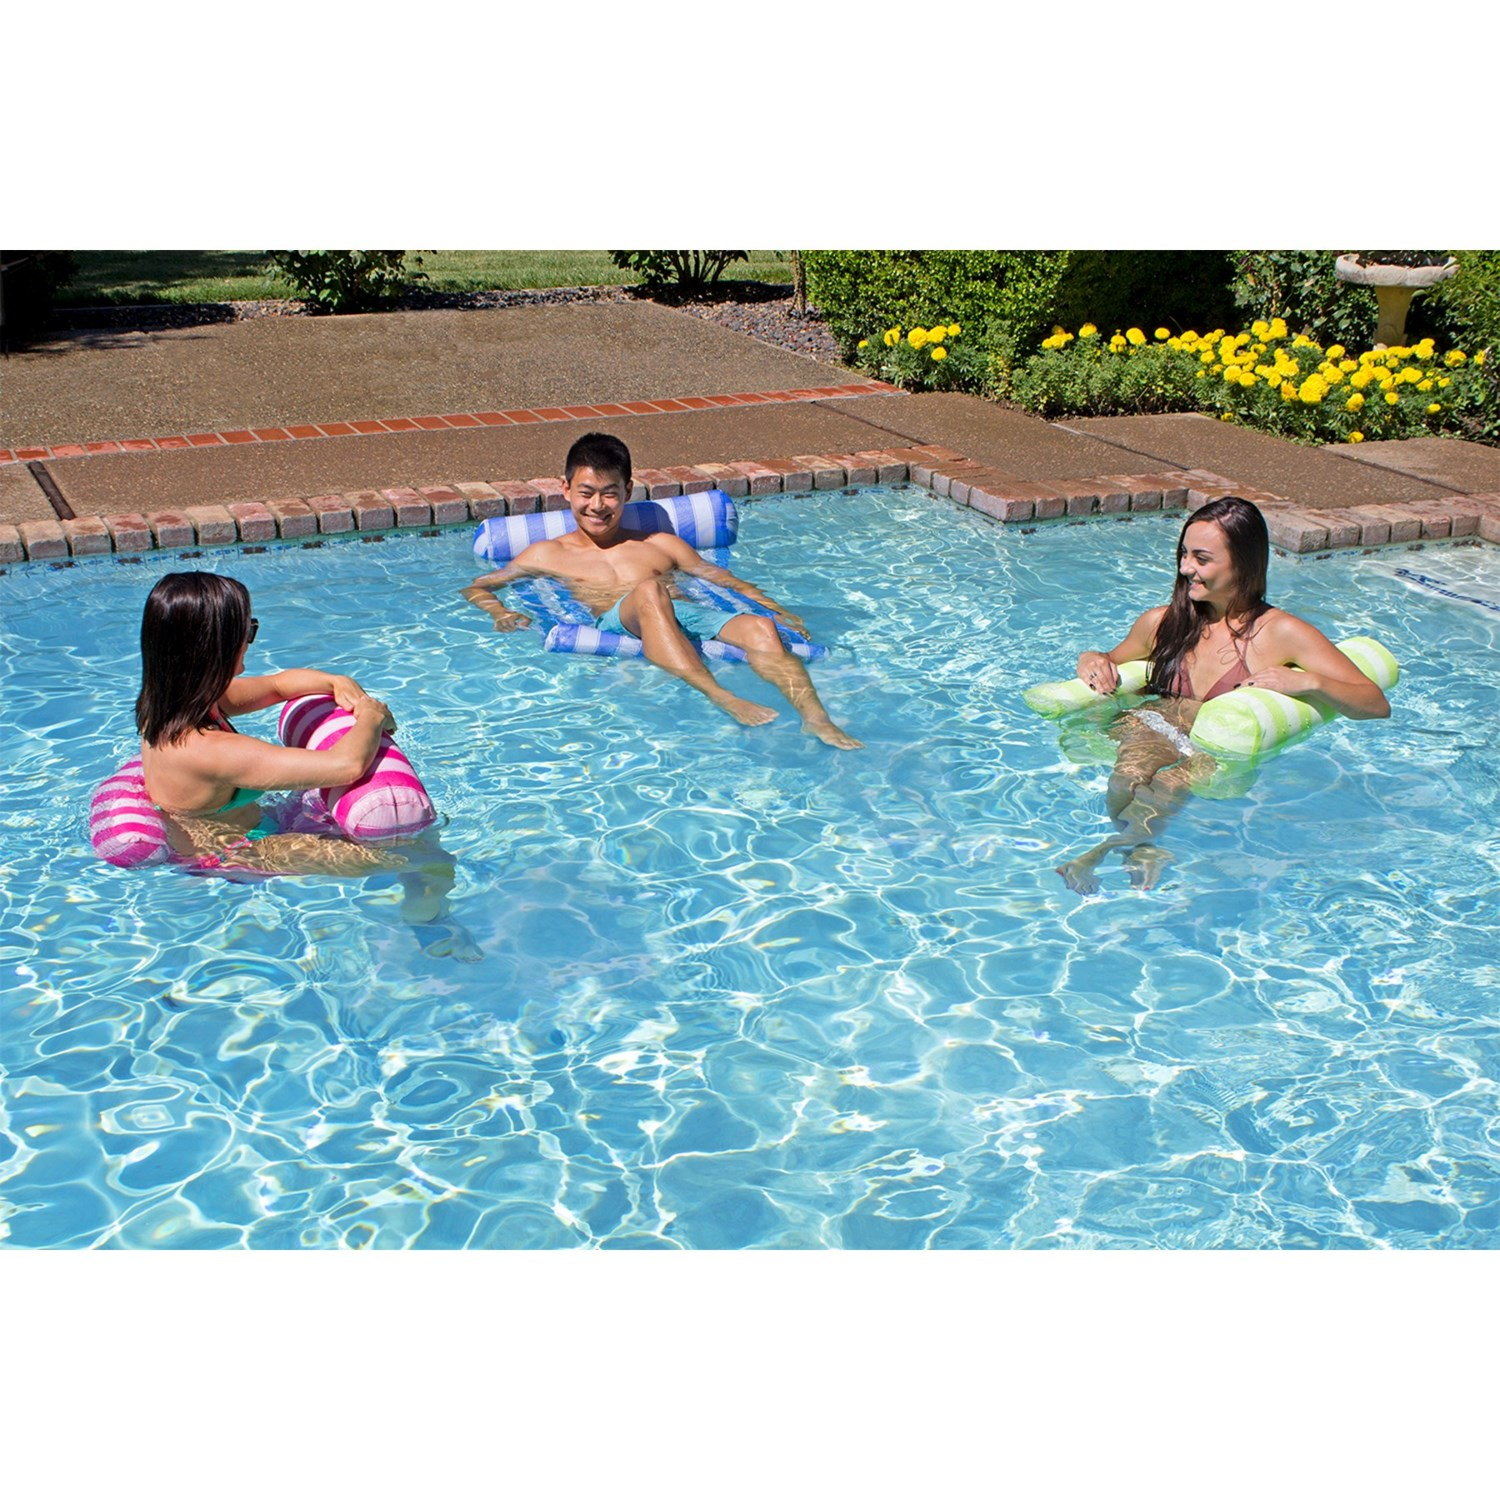 vinyl p the depot lounger orange assorted floats blue yellow pool hammock home poolmaster water and